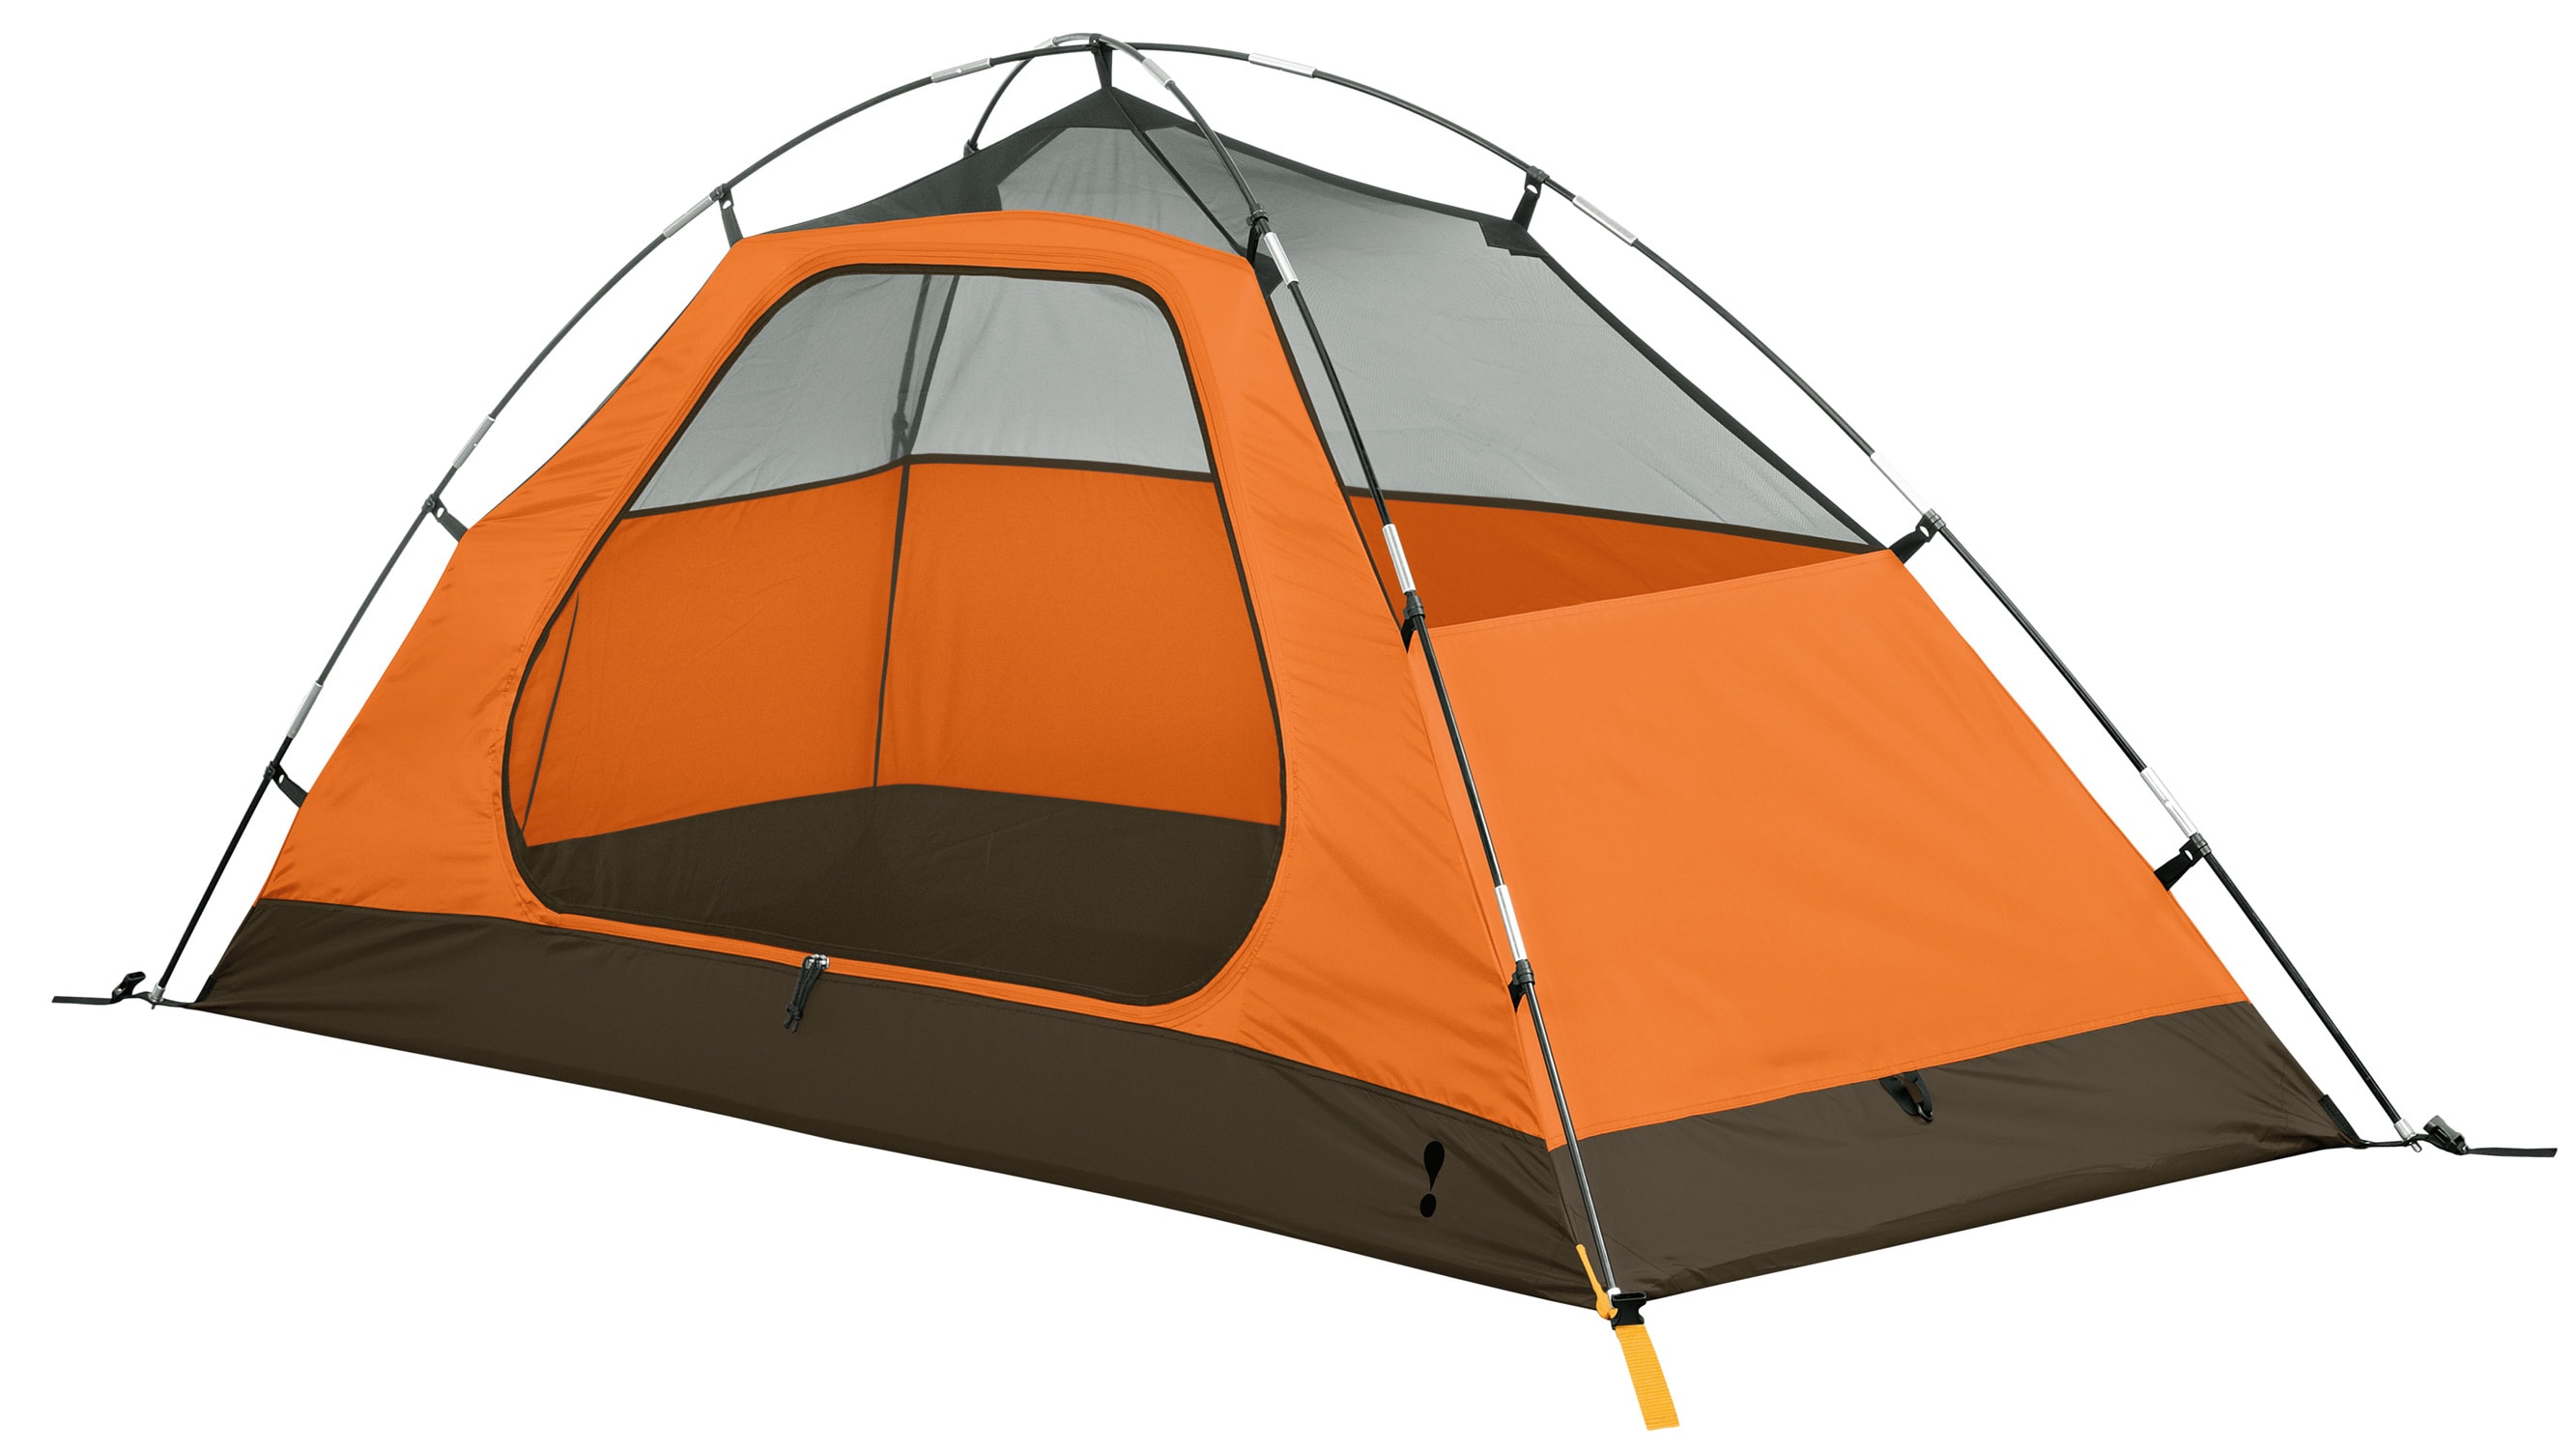 Eureka Apex Solo 1 Person Tent - thumbnail 2  sc 1 st  The House & On Sale Eureka Apex Solo 1 Person Tent up to 60% off